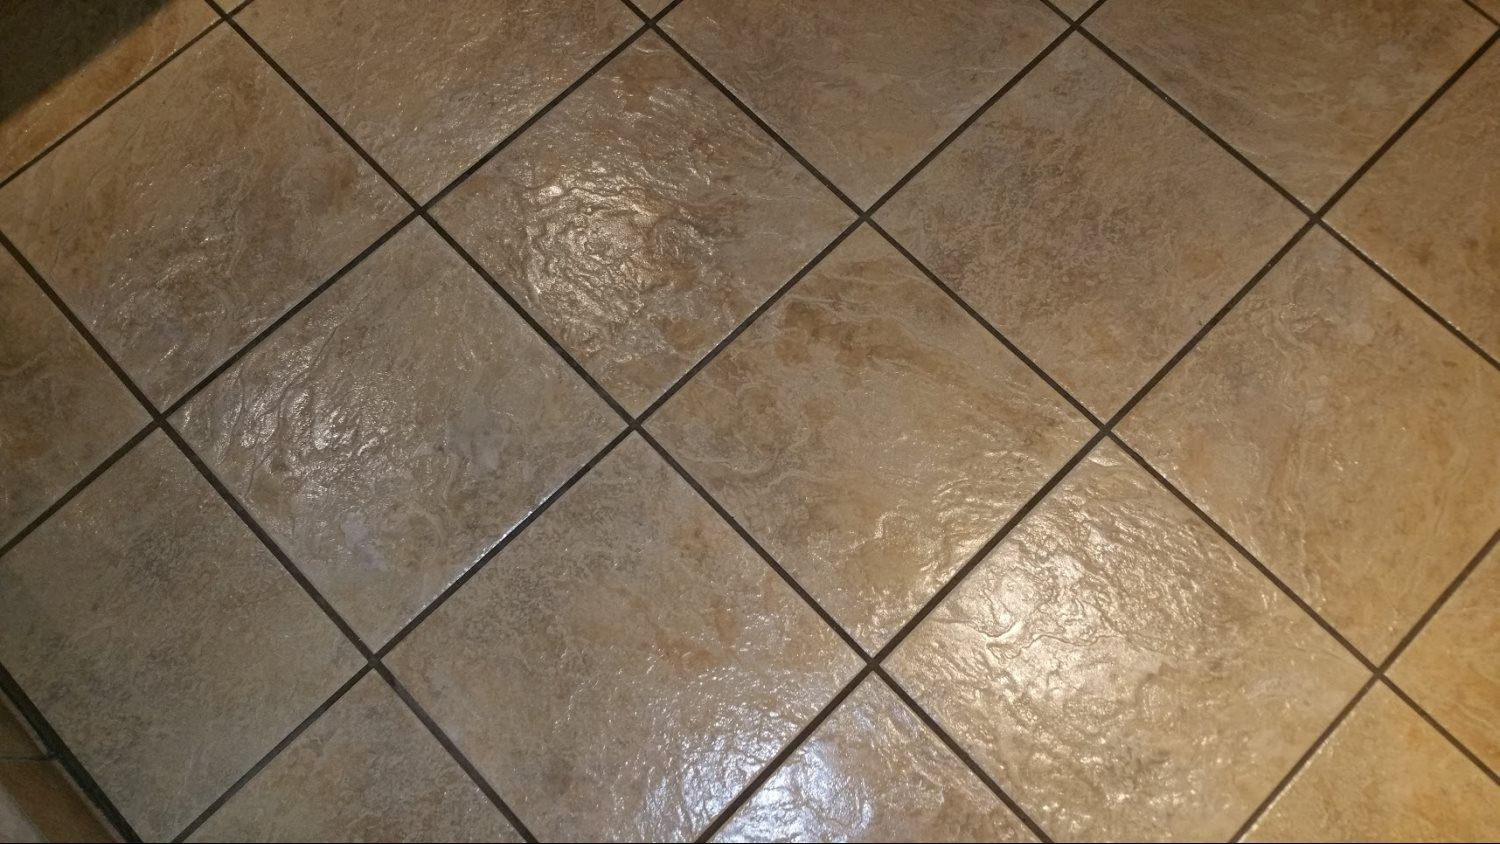 Can You Re Grout A Tile Floor Gaborsagmajsterinfo - Can you regrout tile floor